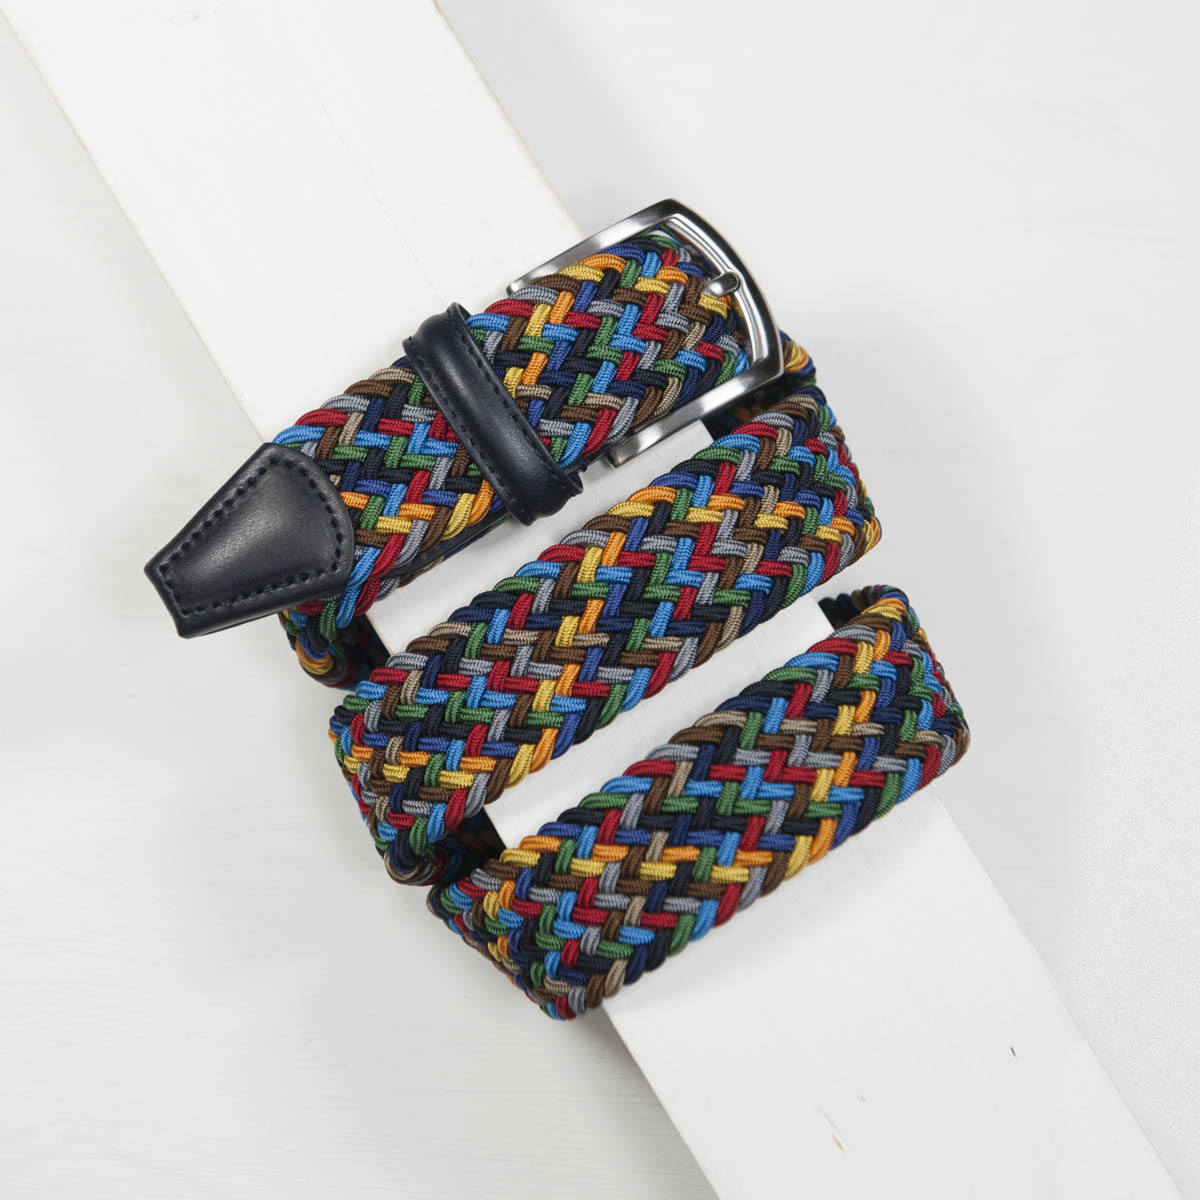 3,5 cm CLASSIC MULTI COLOUR ELASTIC WOVEN BELT NAVY/ORANGE/YELLOW/AQUA/BROWN